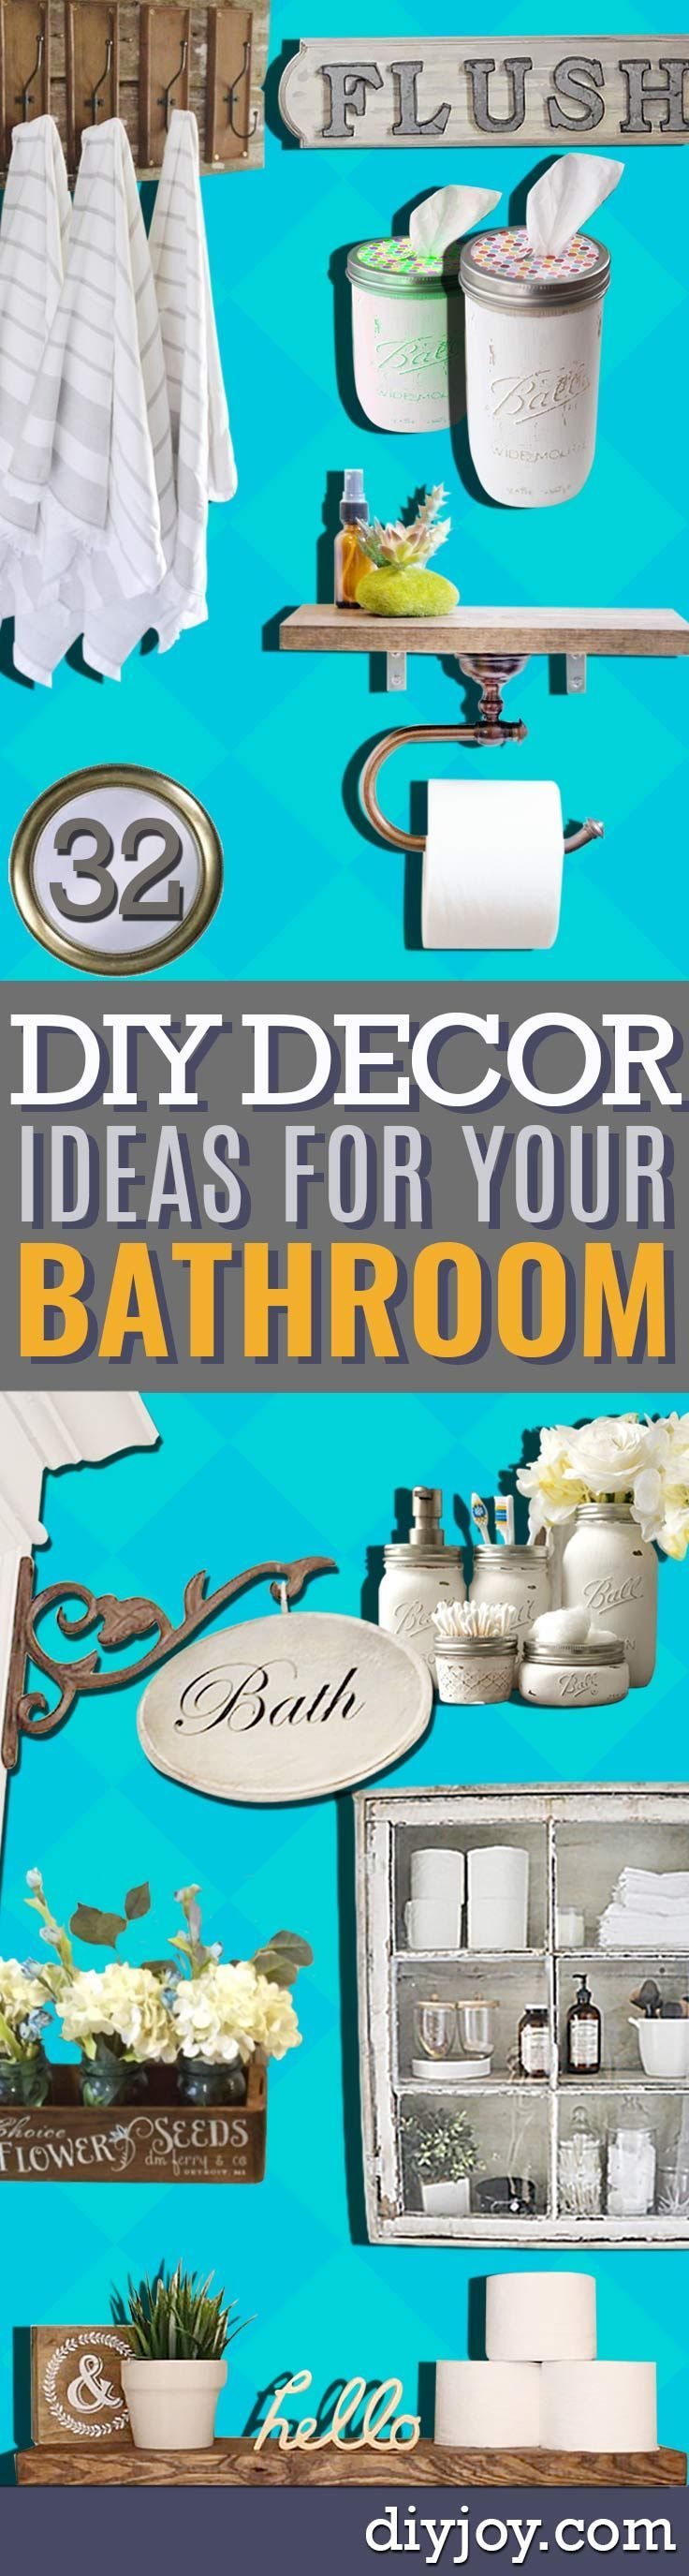 Bathroom decor ideas diy - 31 Brilliant Diy Decor Ideas For Your Bathroom